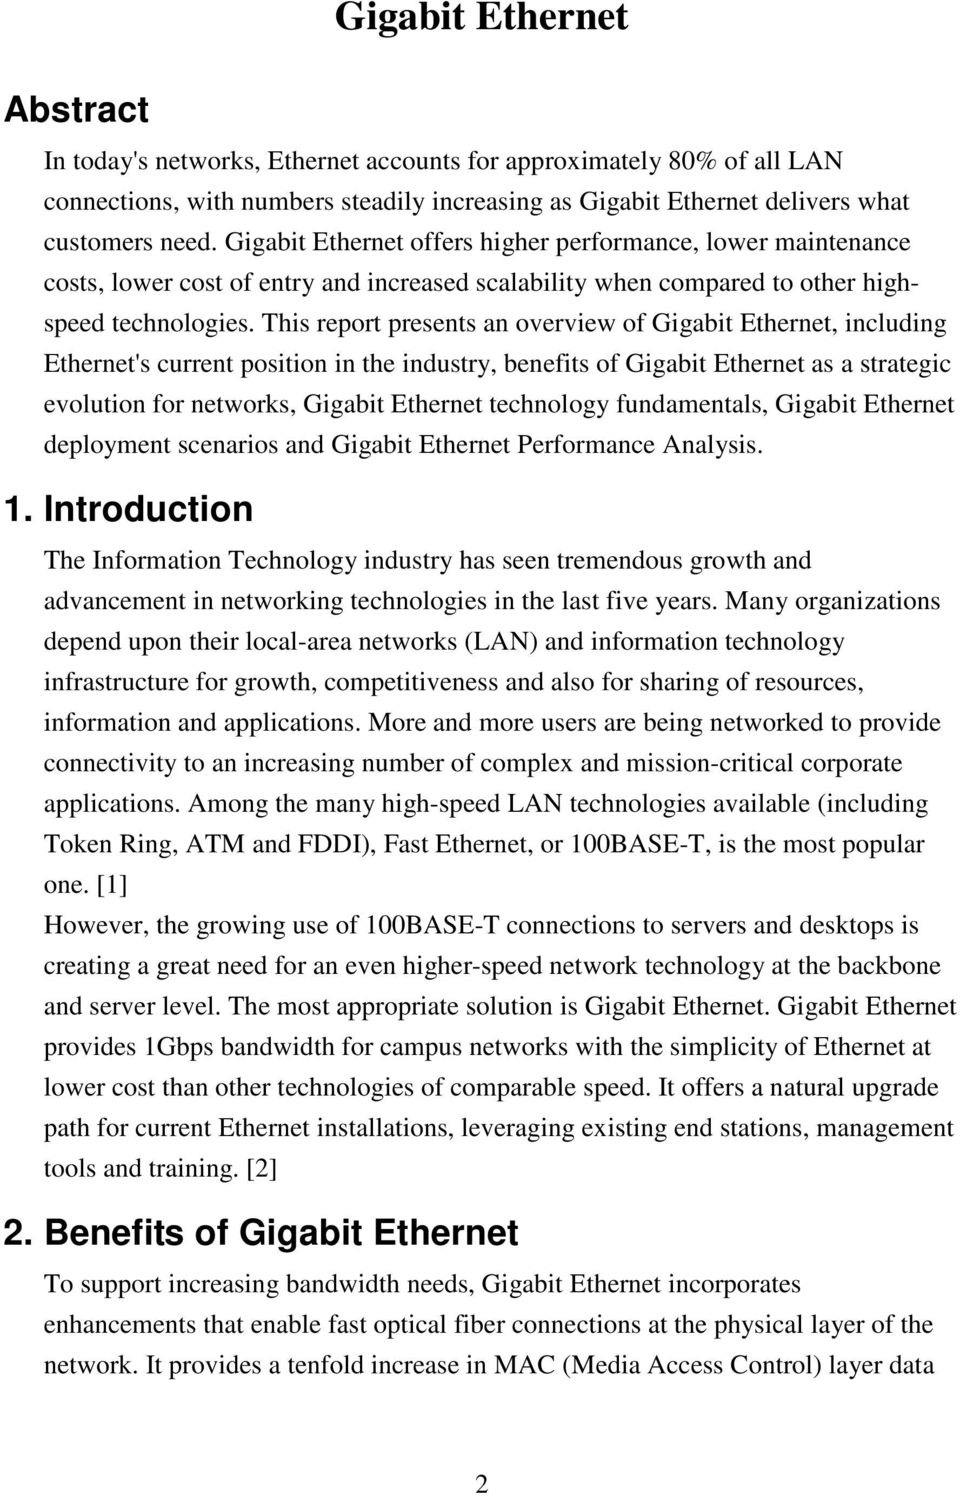 This report presents an overview of Gigabit Ethernet, including Ethernet's current position in the industry, benefits of Gigabit Ethernet as a strategic evolution for networks, Gigabit Ethernet